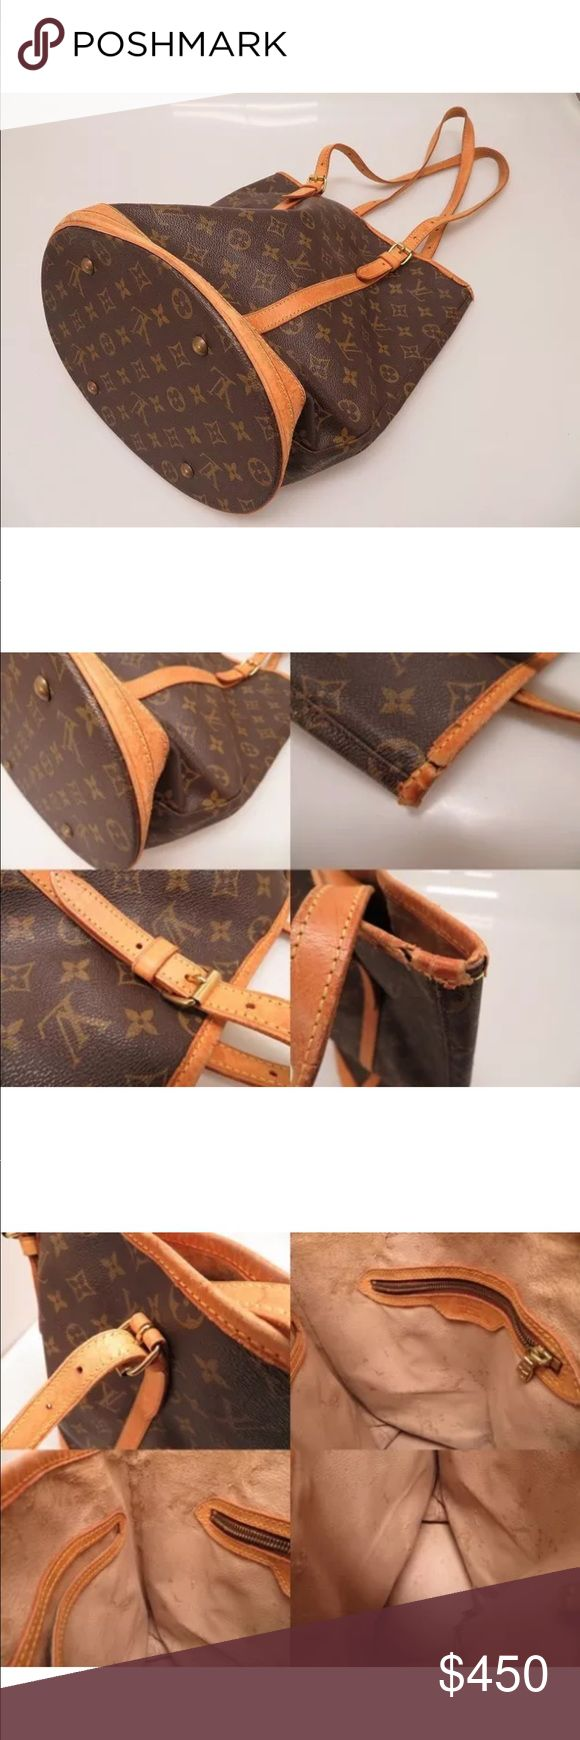 Authentic Louis Vuitton Monogram Bucket Bag Authentic Louis Vuitton Monogram Bucket GM Shoulder Bag M42236 P2602IAOA5. All flaws are in the above pictures Louis Vuitton Bags Shoulder Bags